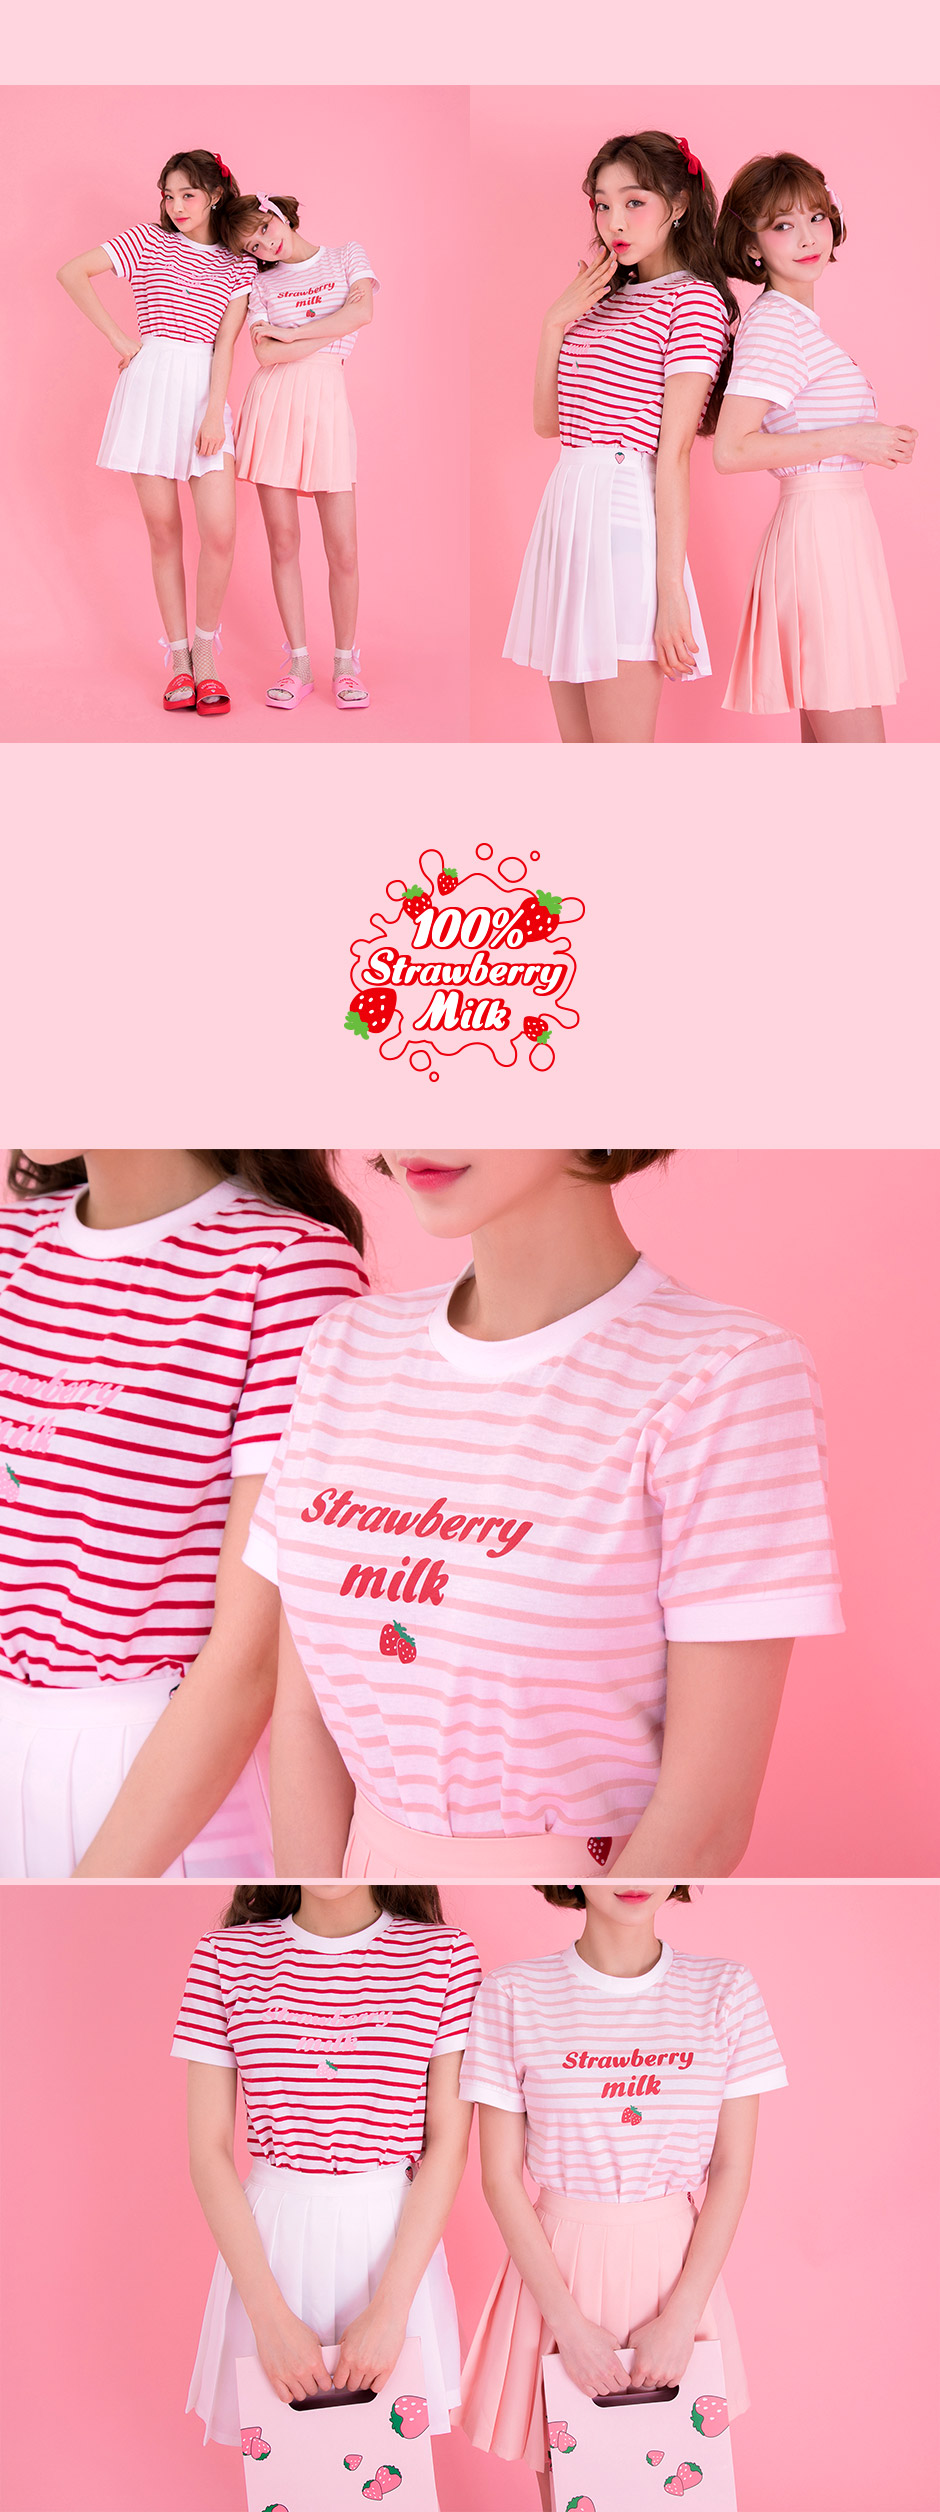 //cdn.nhanh.vn/cdn/store/29770/psCT/20180730/8419701/Strawberry_Milk_Strawberry_Craving_Tee_(0313_b01_(2)).jpg